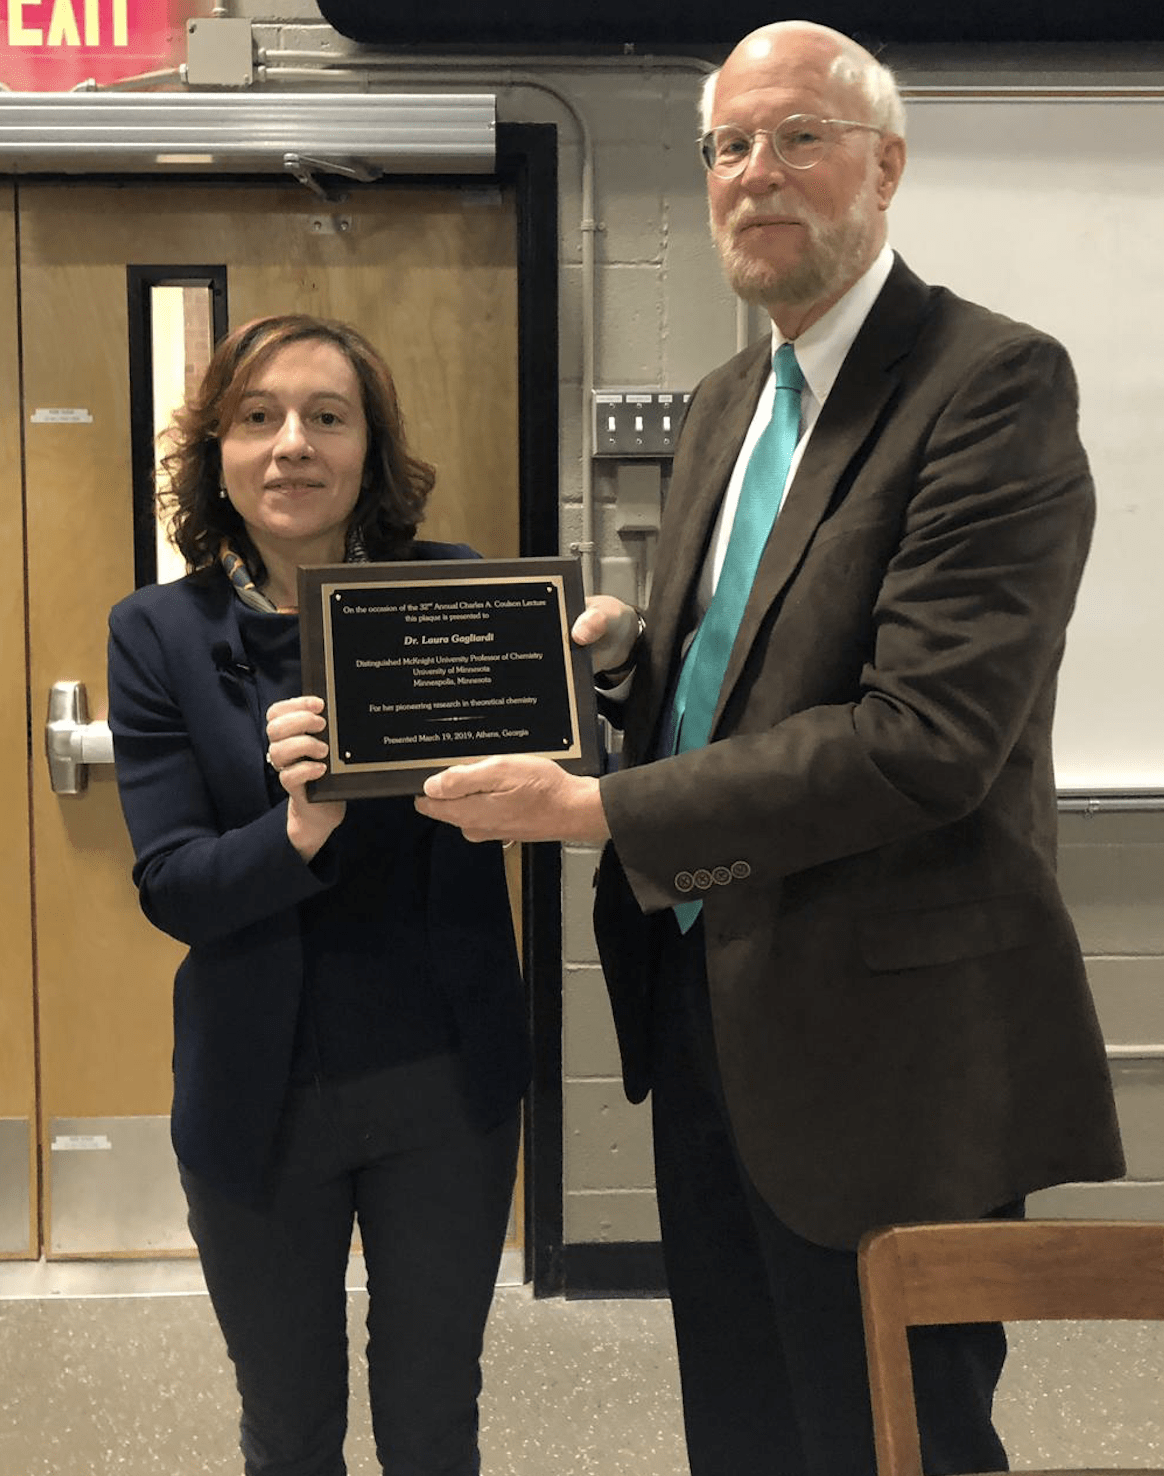 Laura receives Coulson plaque from Professor Henry F. Schaefer III